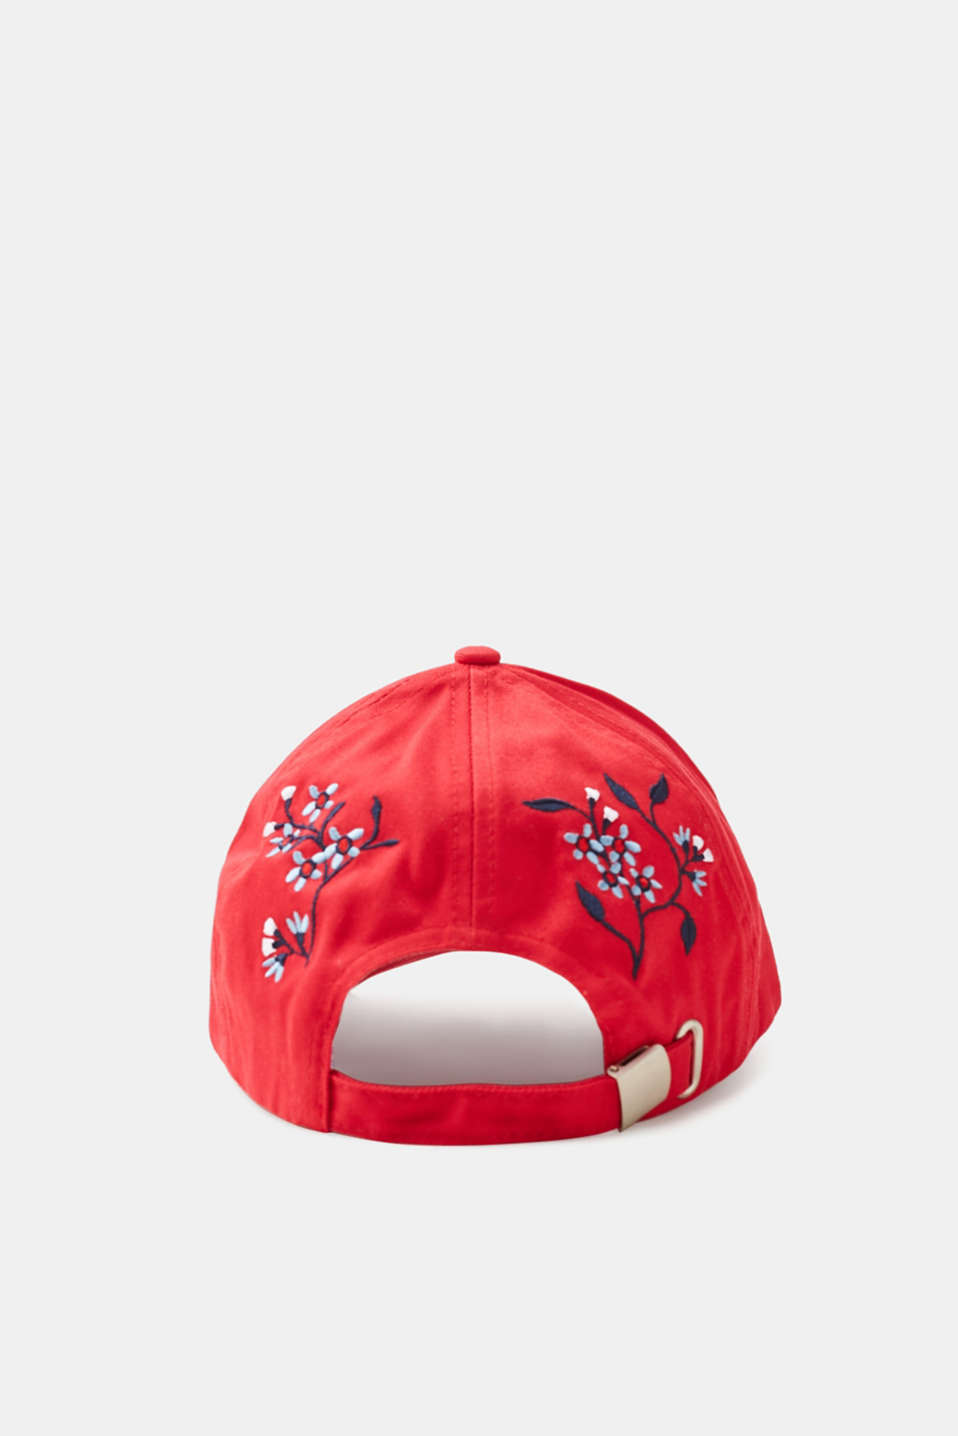 Baseball cap with floral embroidery